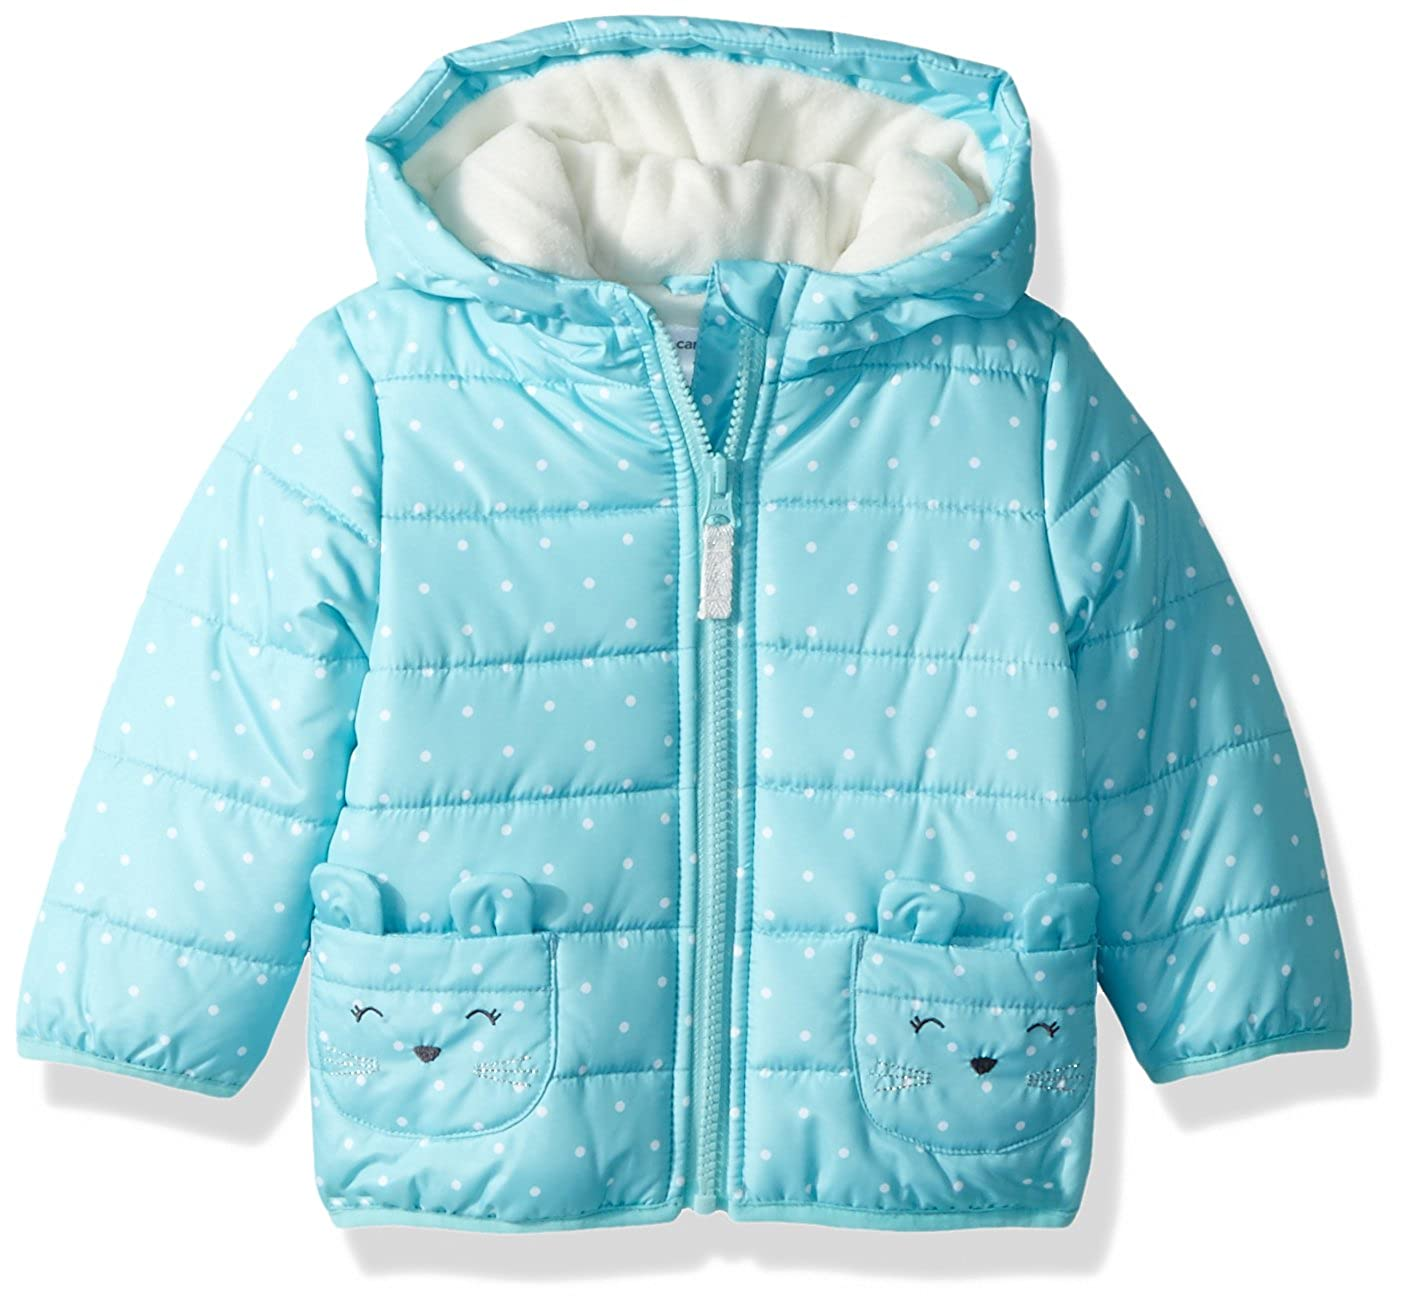 Carter's Baby Girls' Fleece Lined Critter Puffer Jacket Coat Carter' s